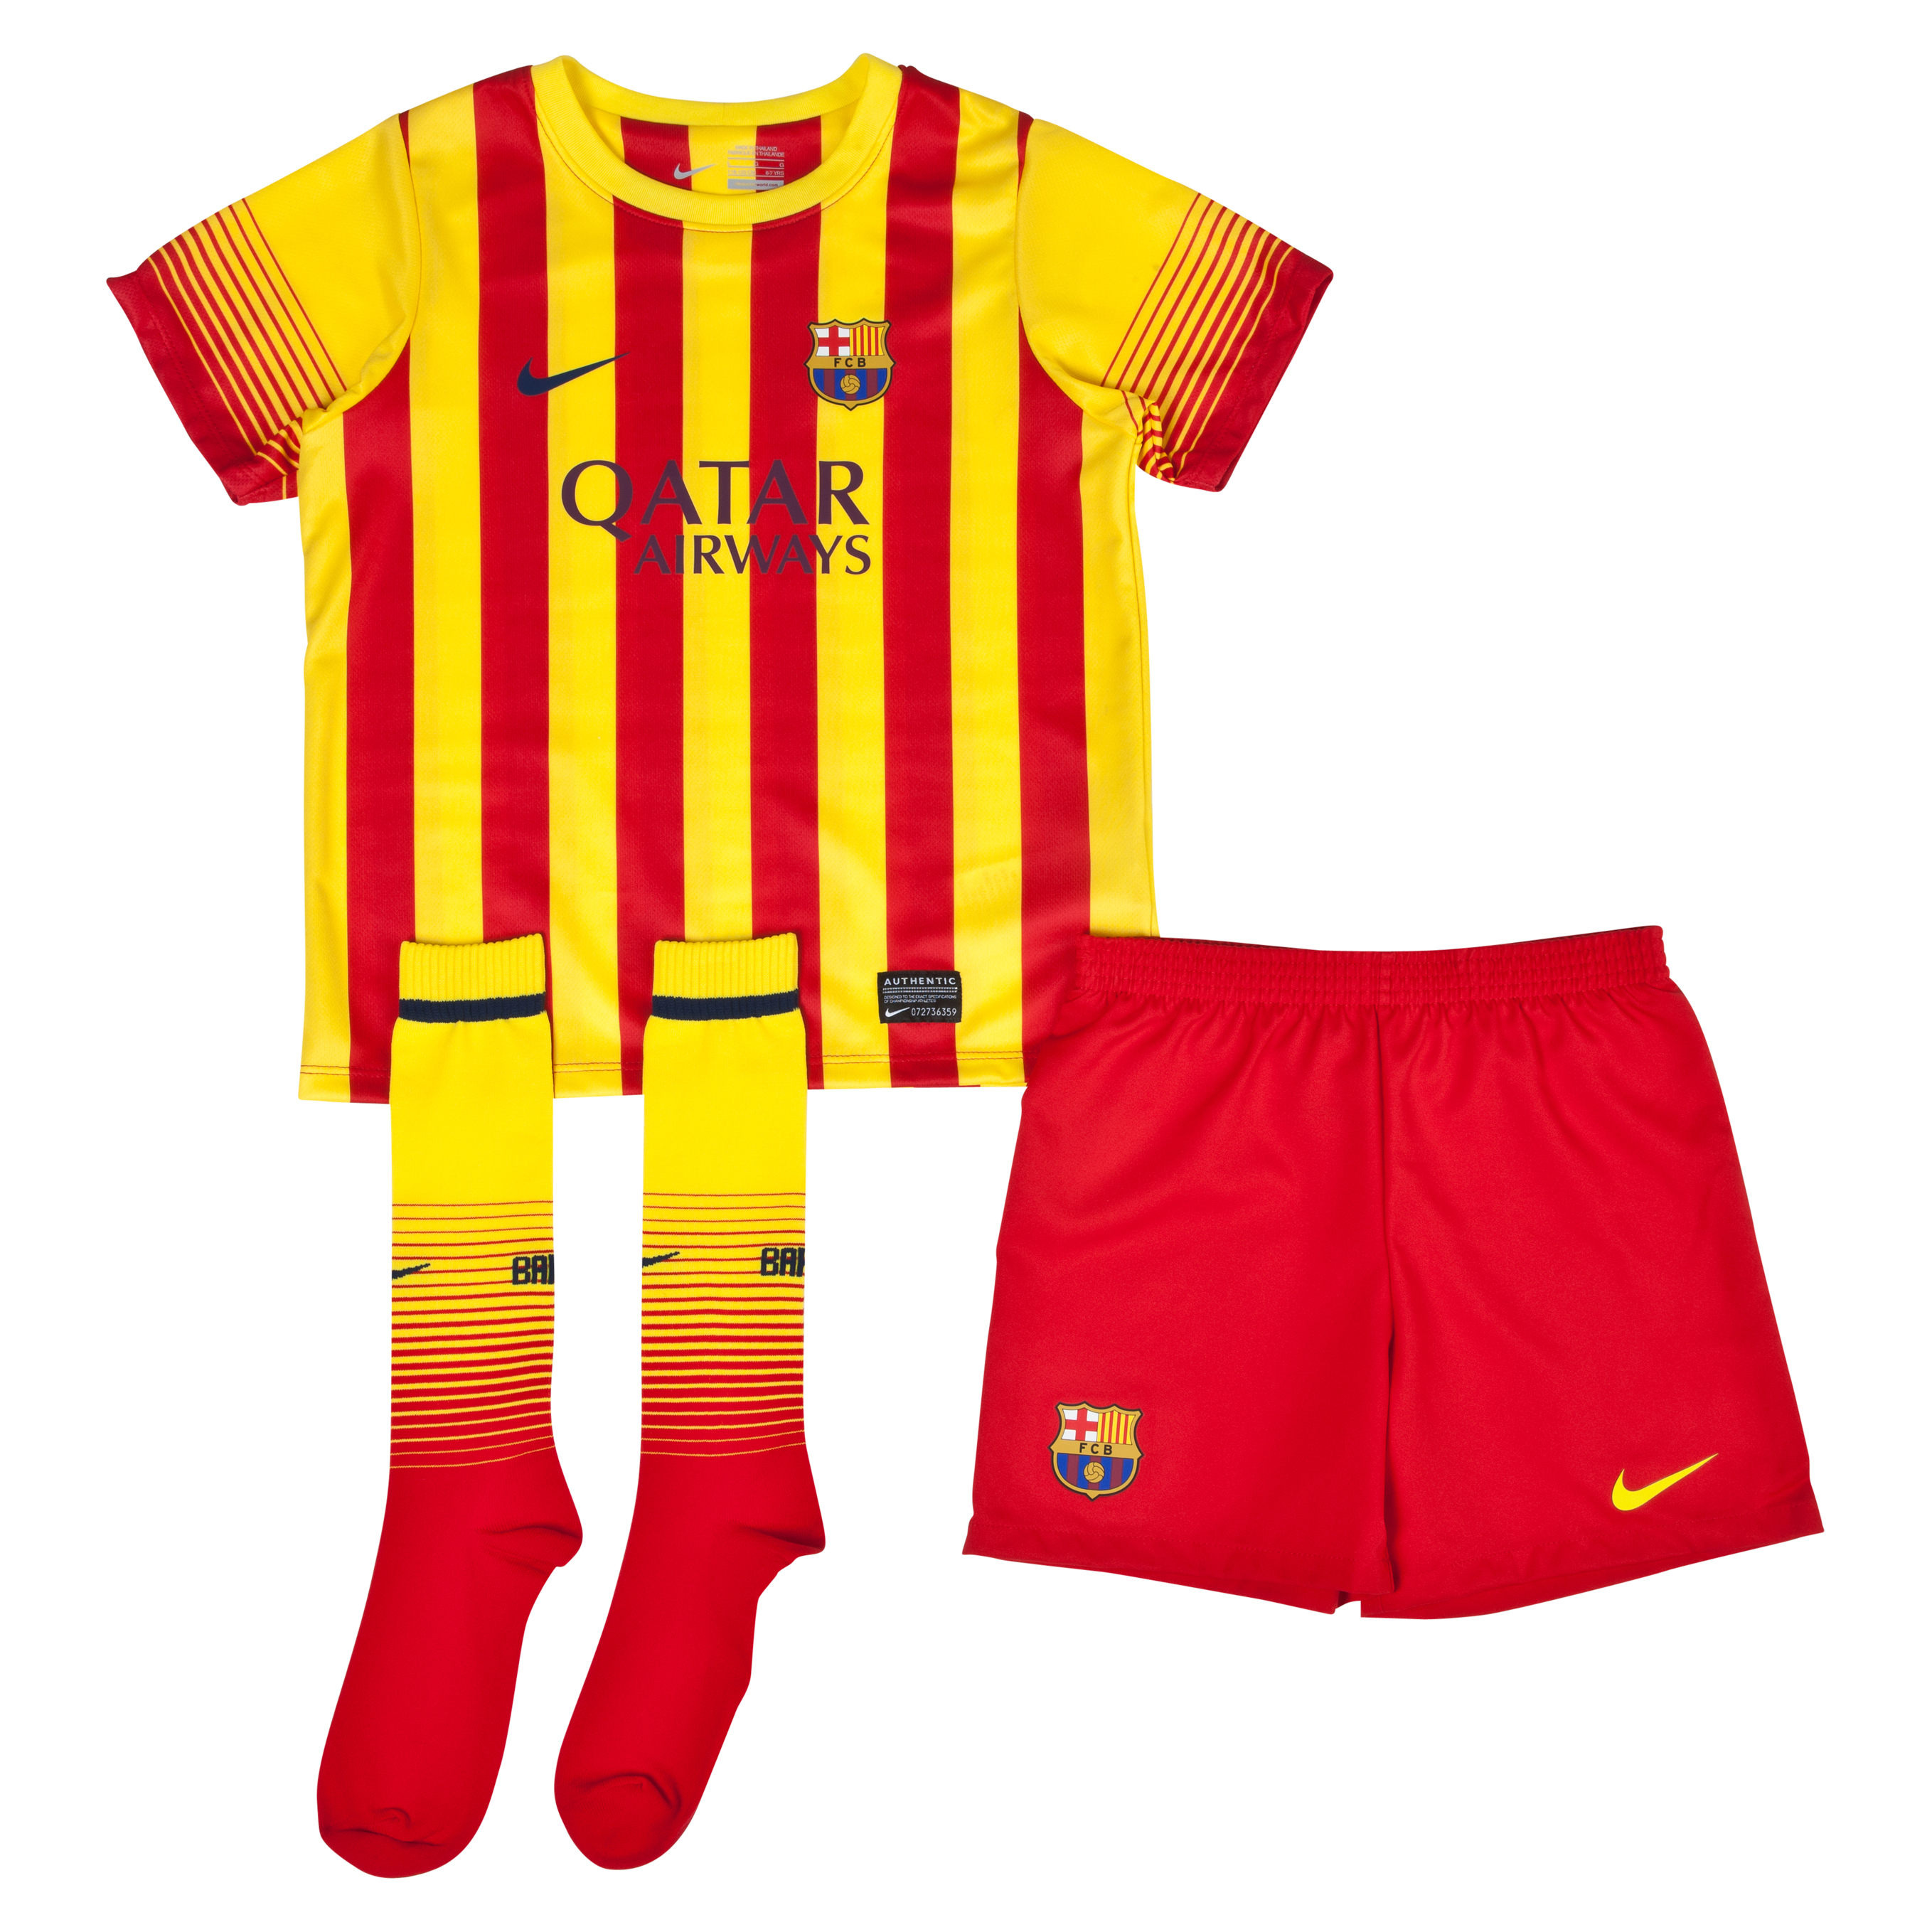 Buy Barcelona Away Kit 2013/14 Little Boys